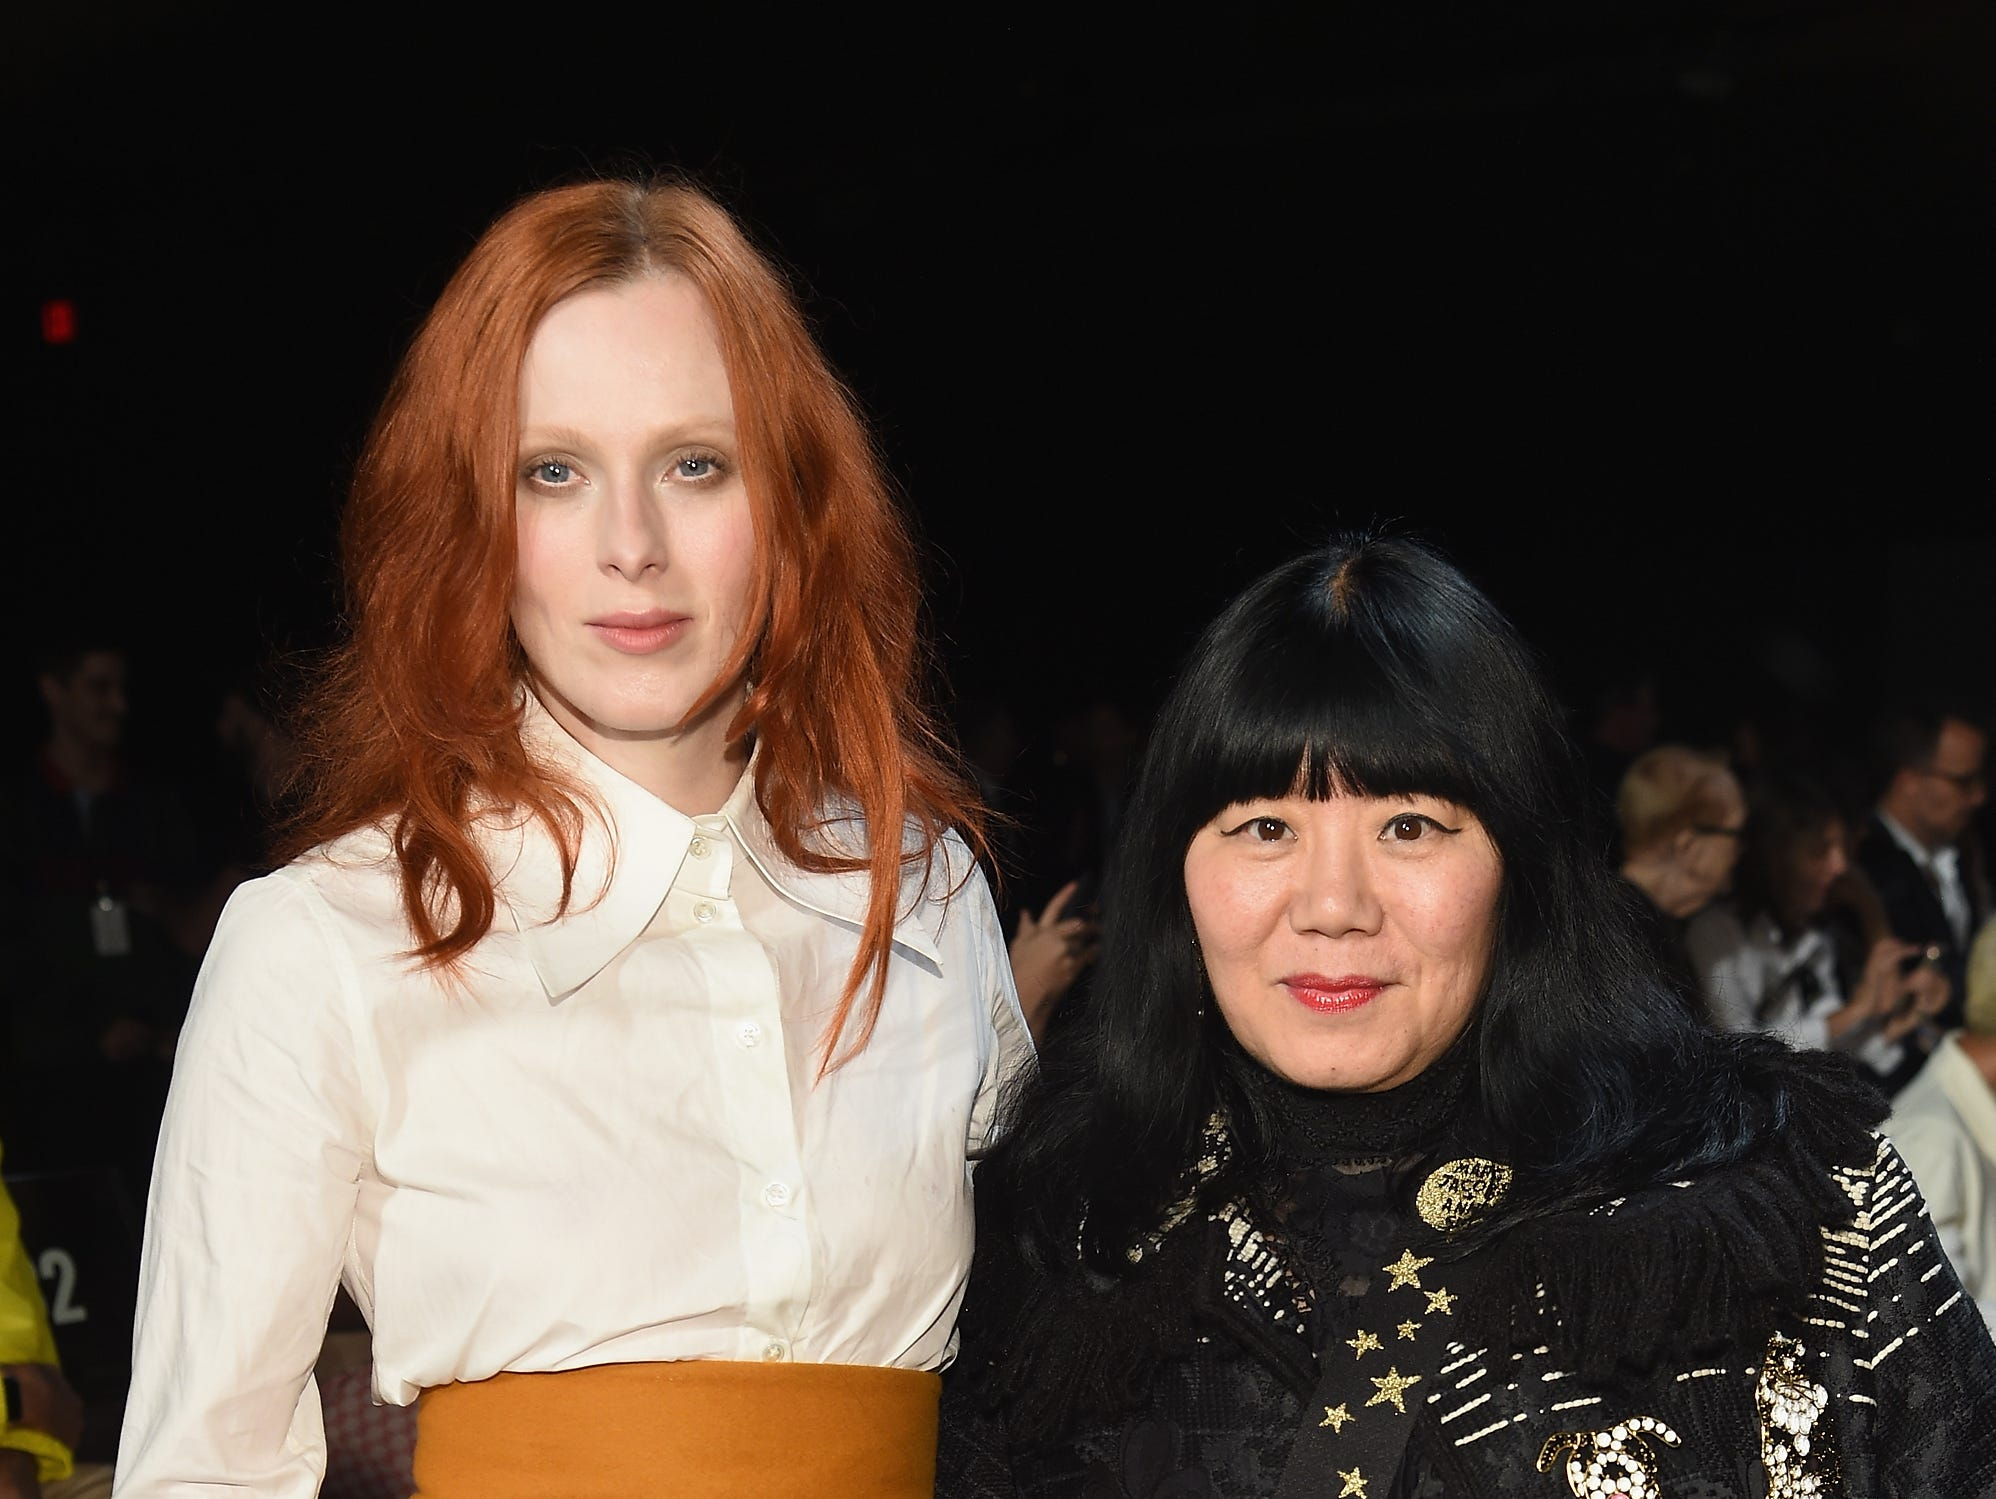 NEW YORK, NY - SEPTEMBER 12: Karen Elson and Anna Sui attend the Marc Jacobs Spring 2019 Runway Front Row during New York Fashion Week: The Shows  at Park Avenue Armory on September 12, 2018 in New York City.  (Photo by Dimitrios Kambouris/Getty Images for Marc Jacobs) ORG XMIT: 775216977 ORIG FILE ID: 1032345998